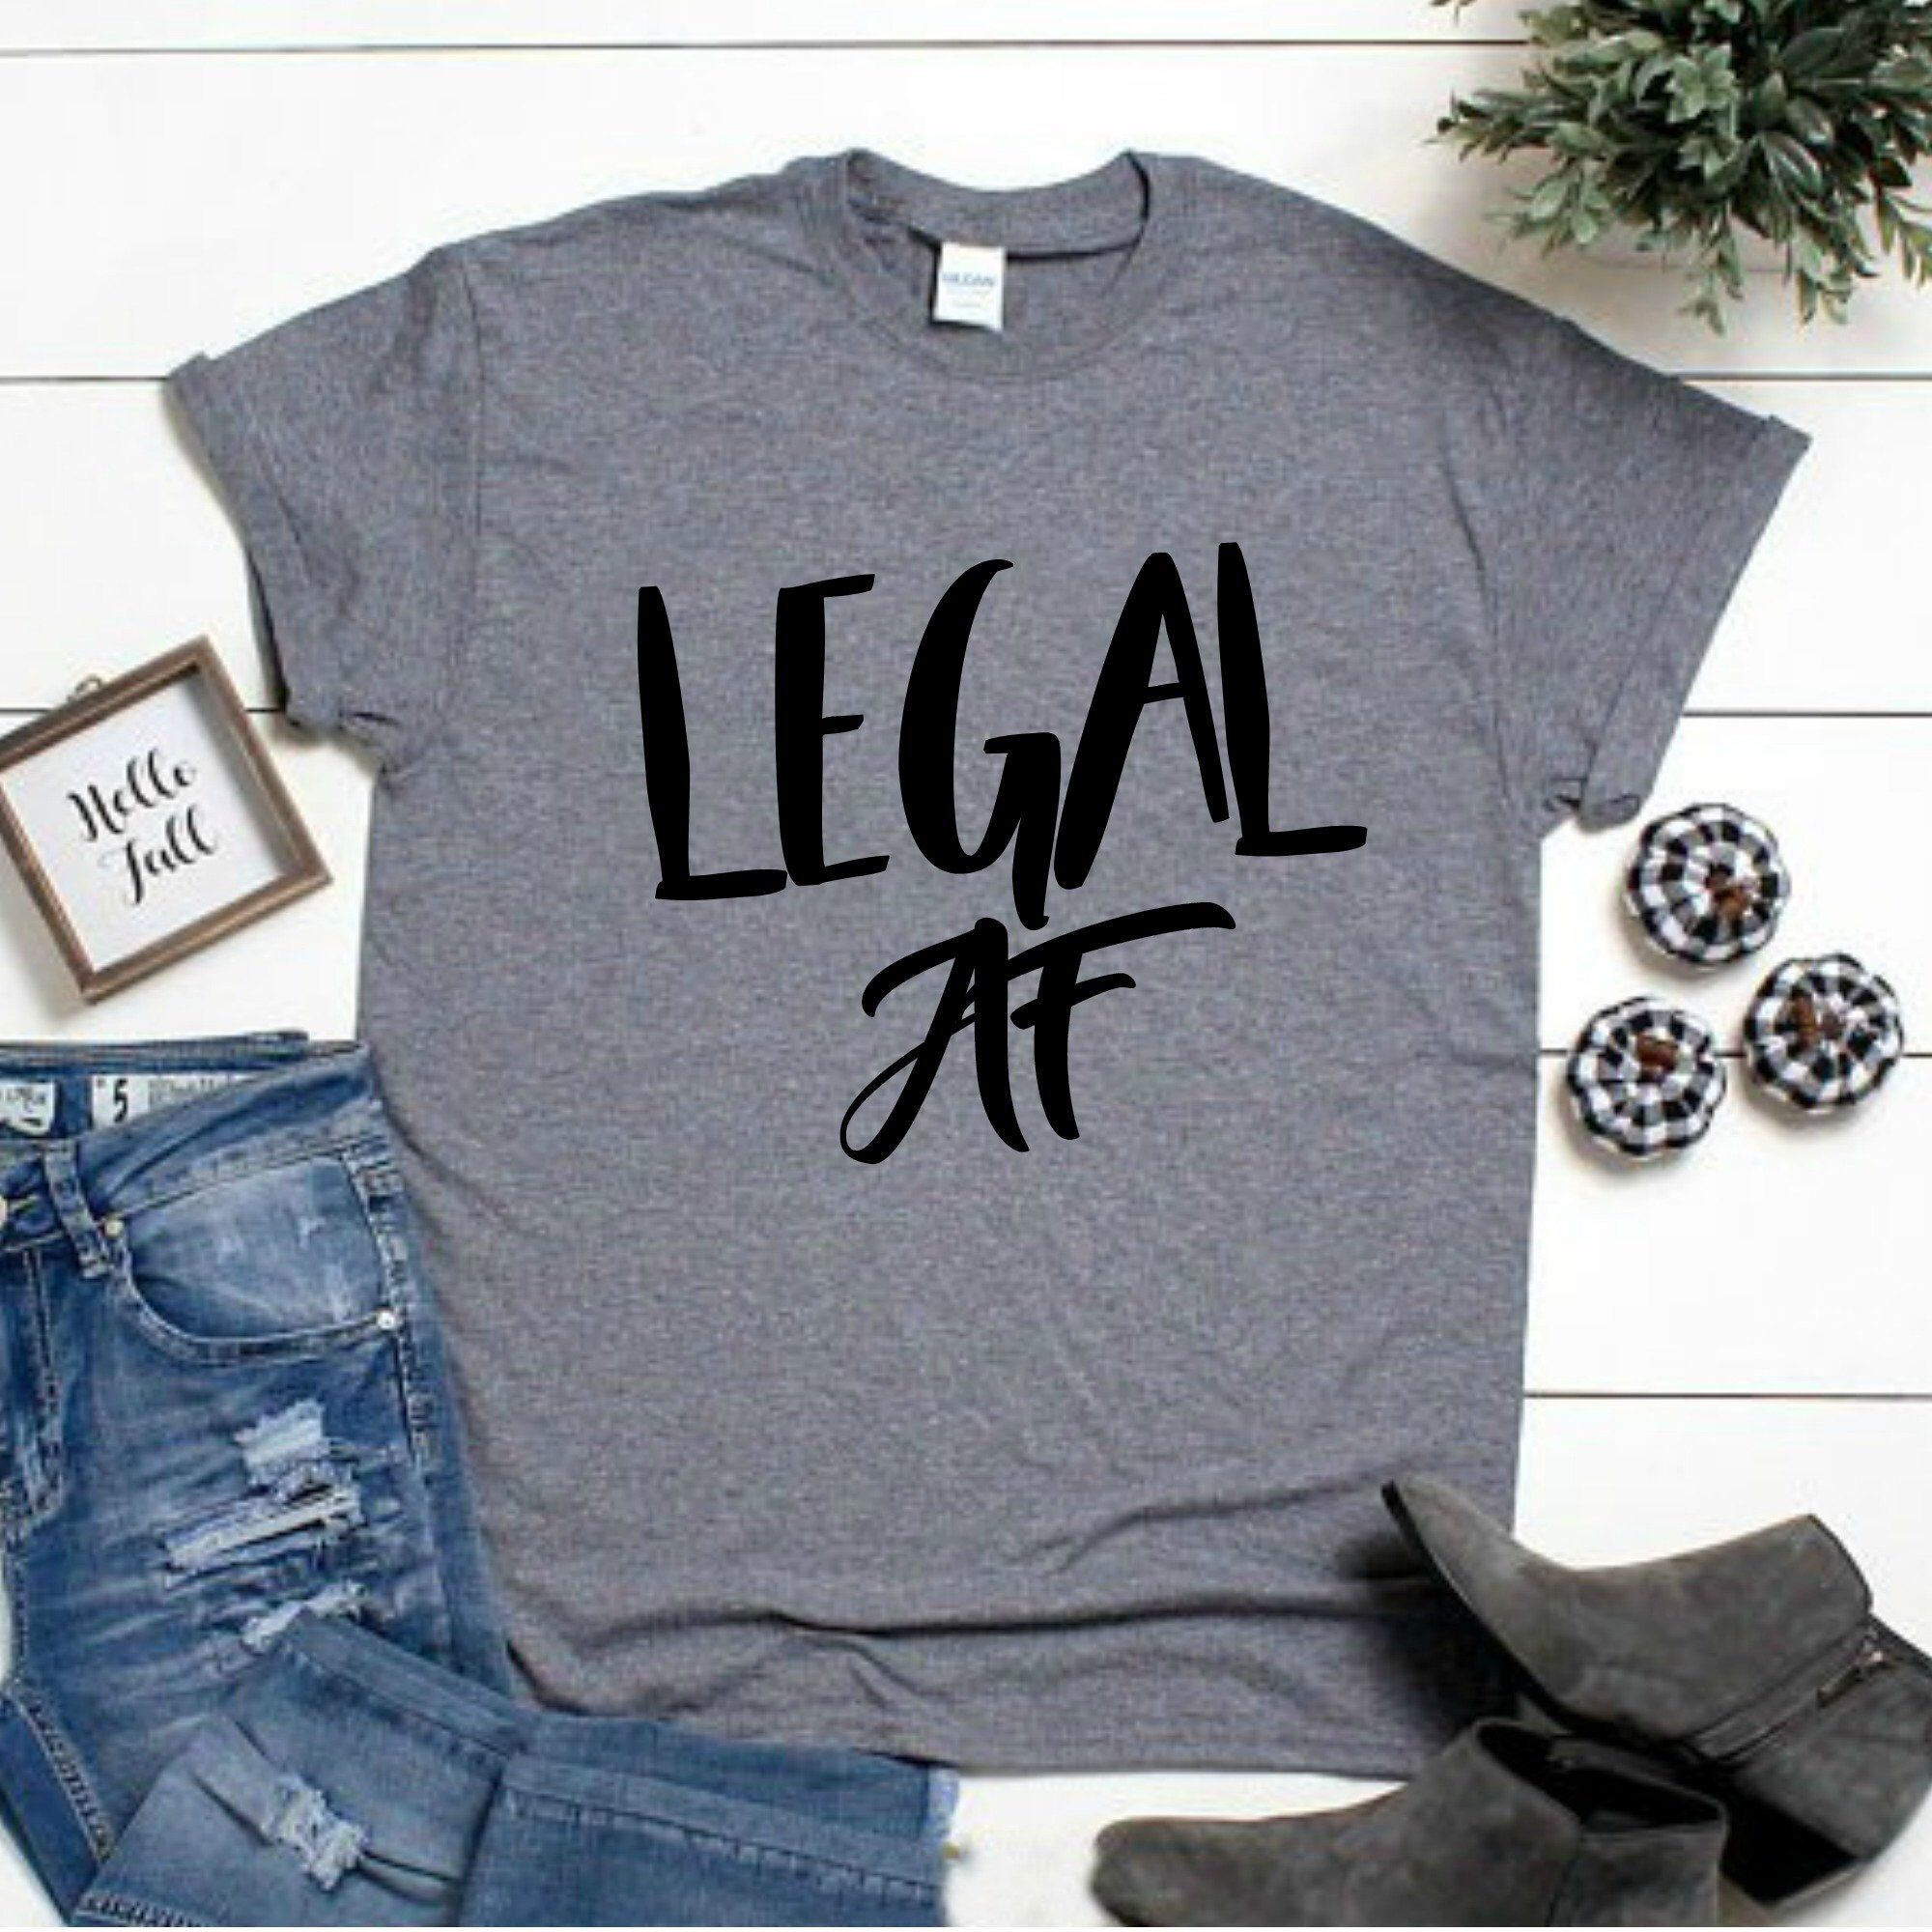 7c9016bc71416 Excited to share the latest addition to my  etsy shop  legal af shirt -  twenty one af shirt - 21st bday shirt - 21 shirt - 21st birthday gift -  funny ...